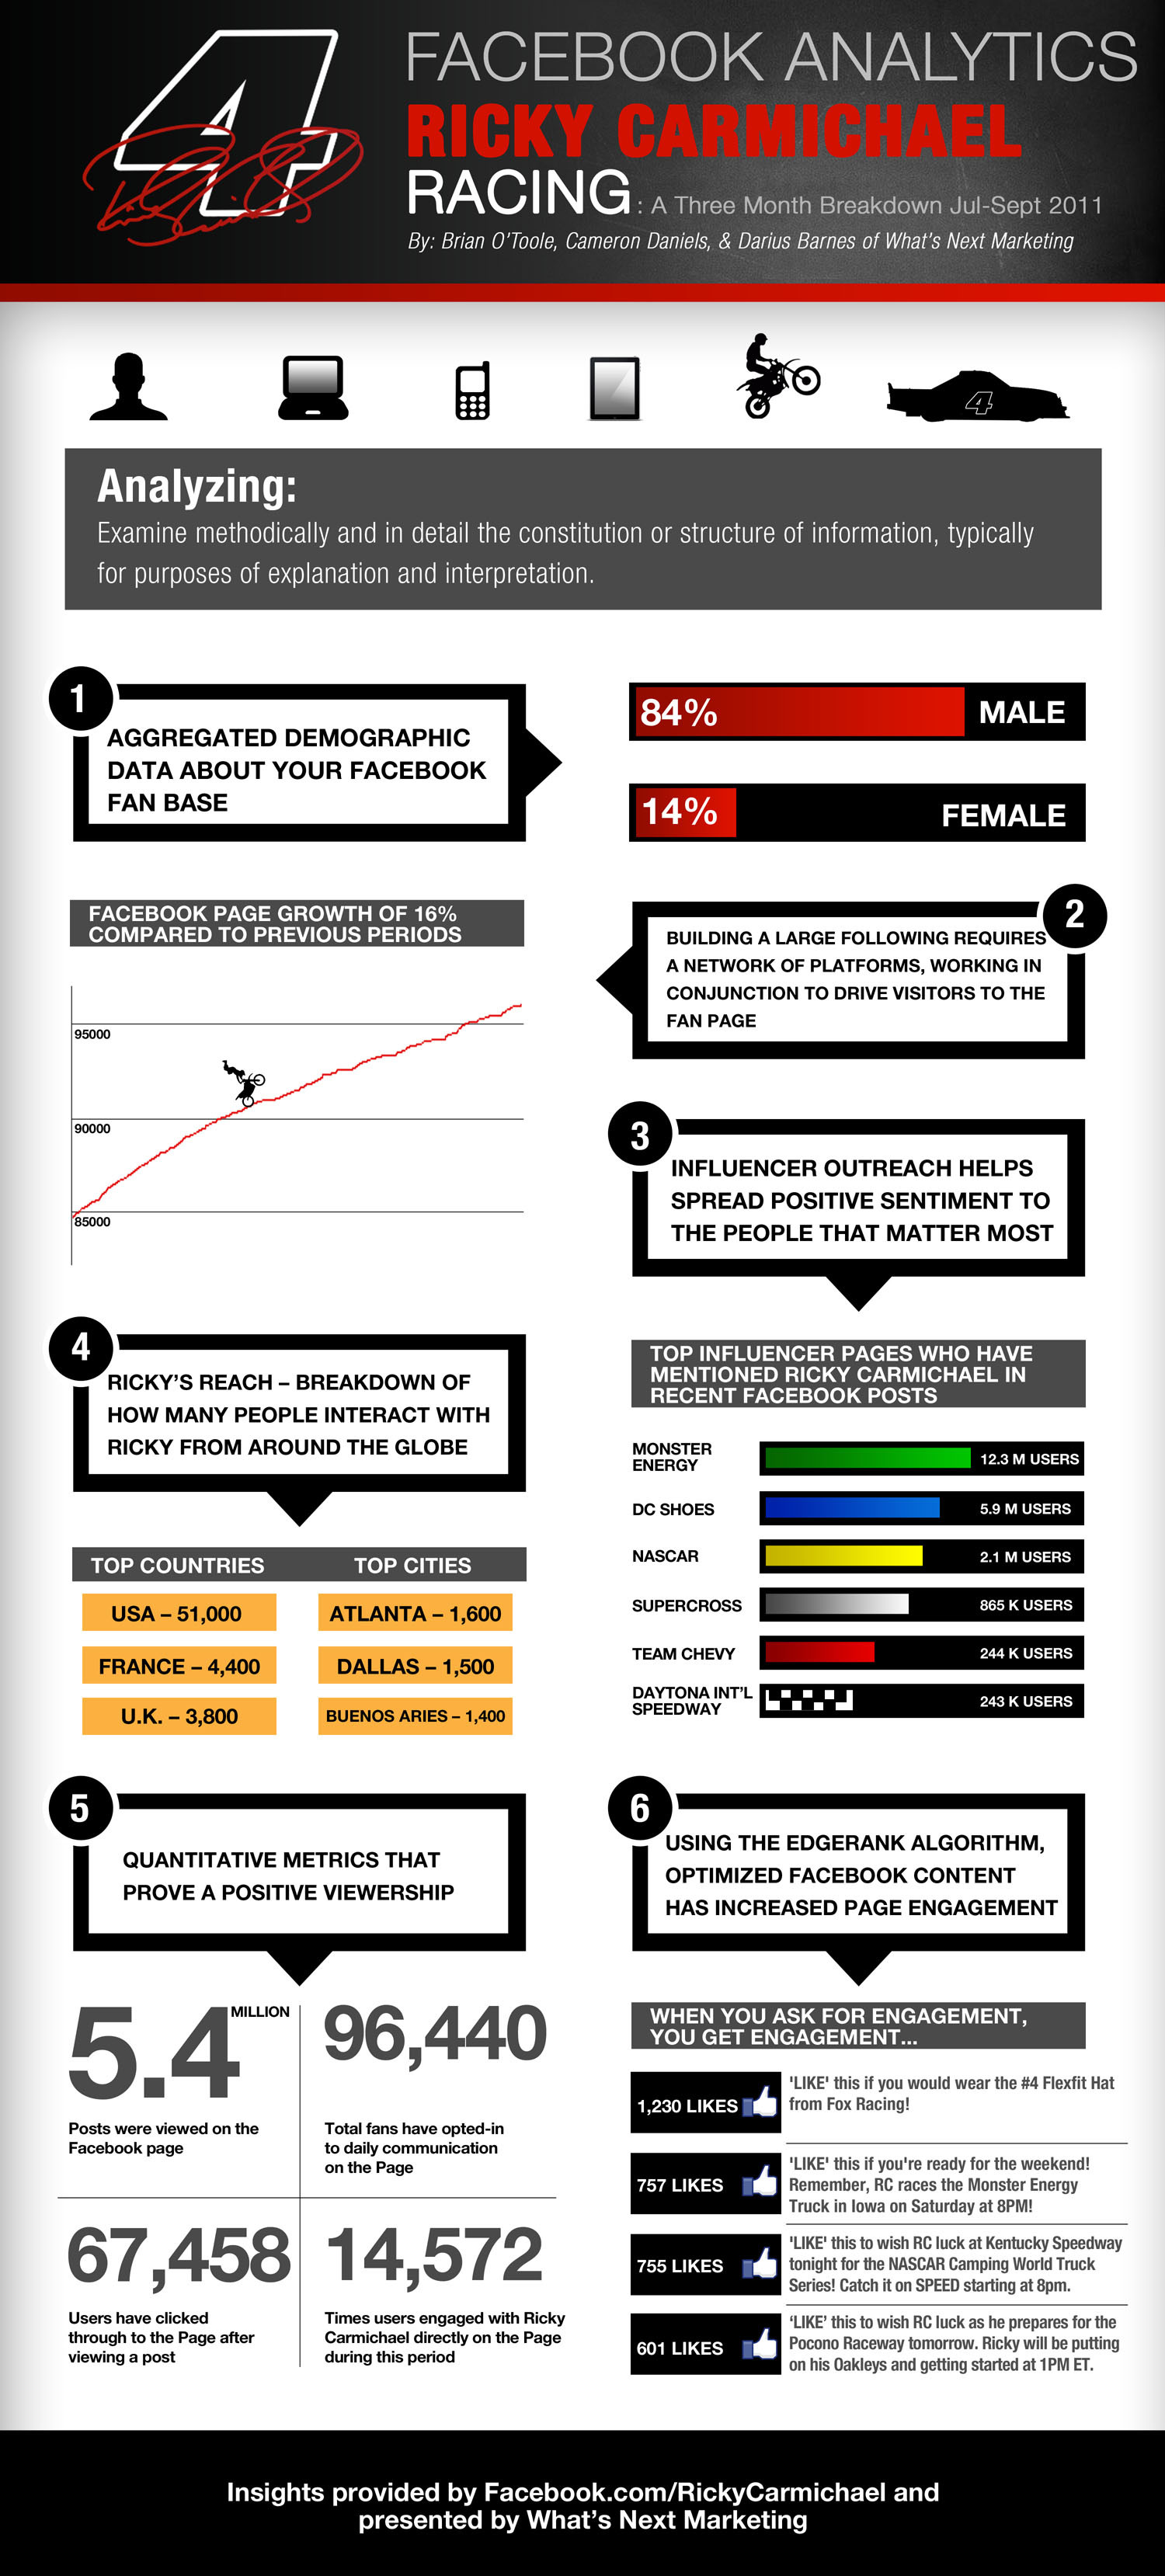 Ricky Carmichael Racing - Facebook Campaign Growth Infographic